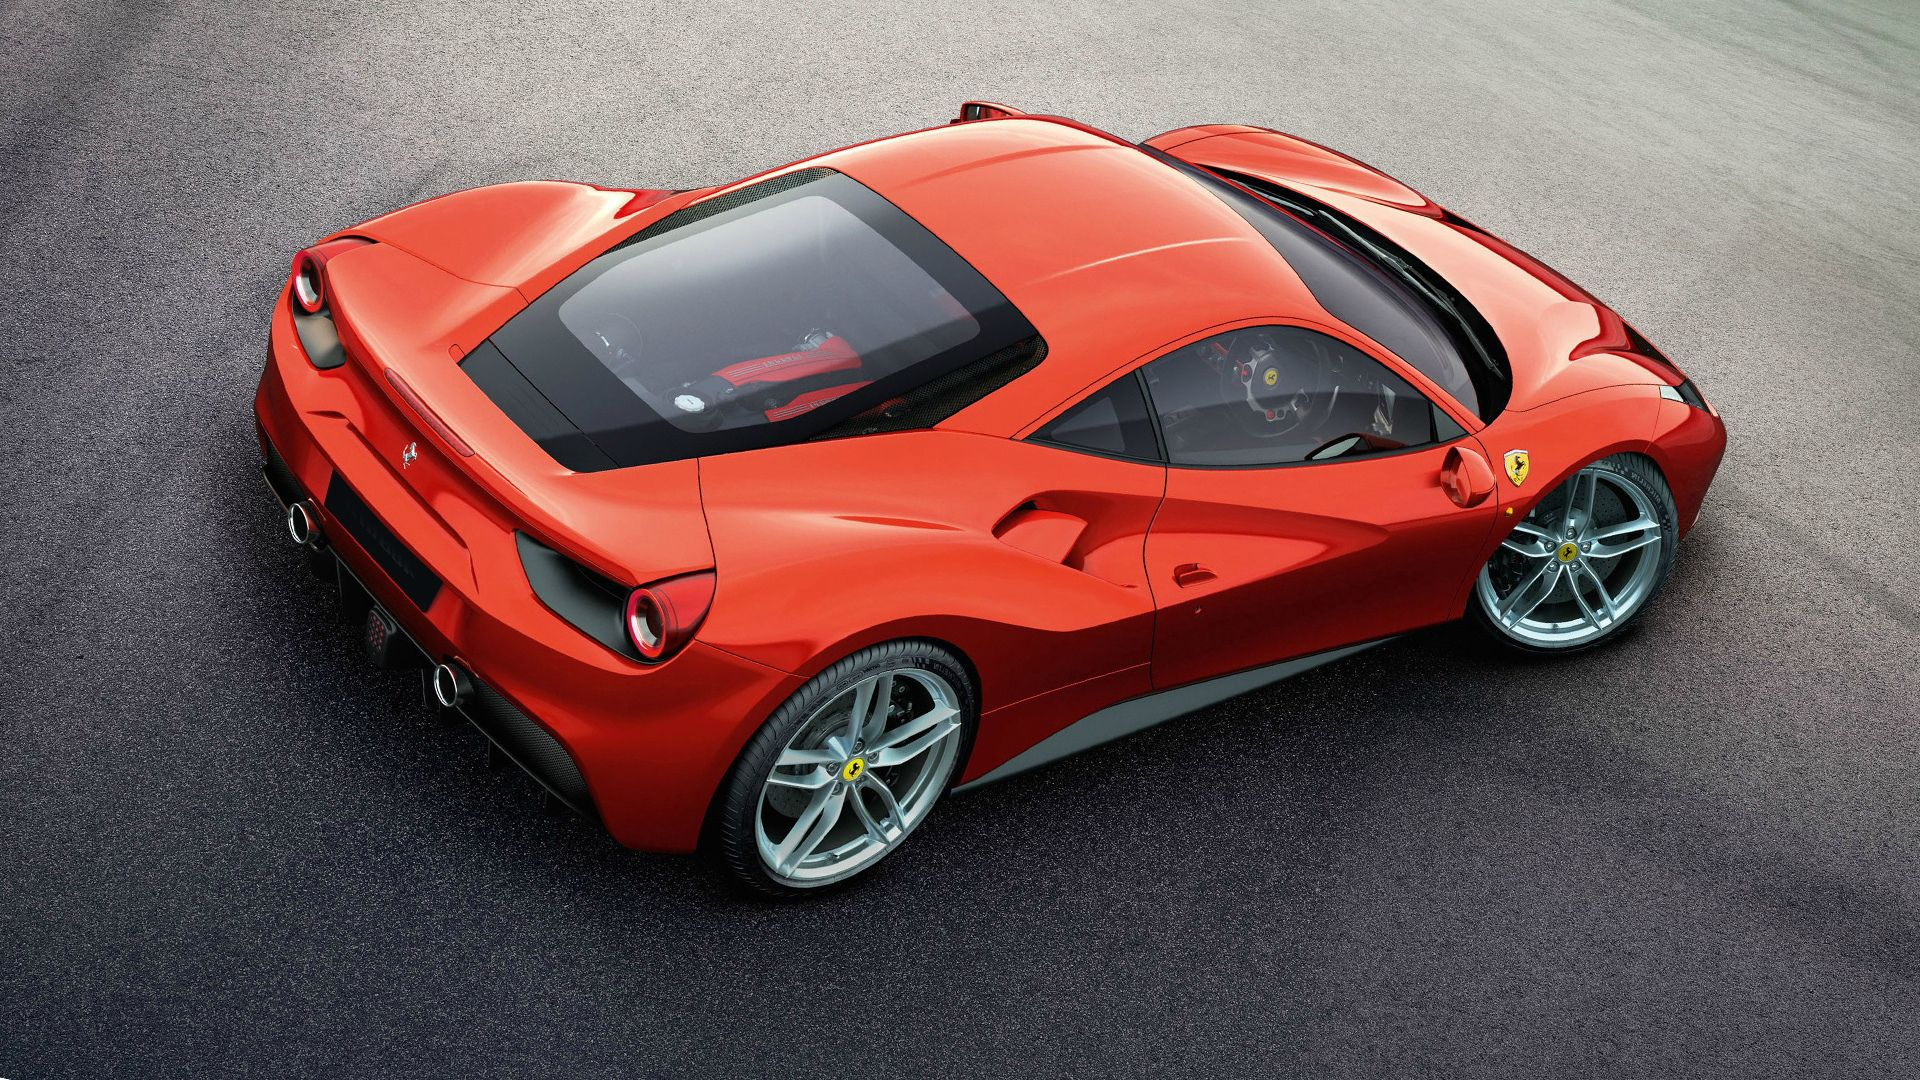 New 2019 Ferrari 488 Gtb Specs Features With Images Ferrari